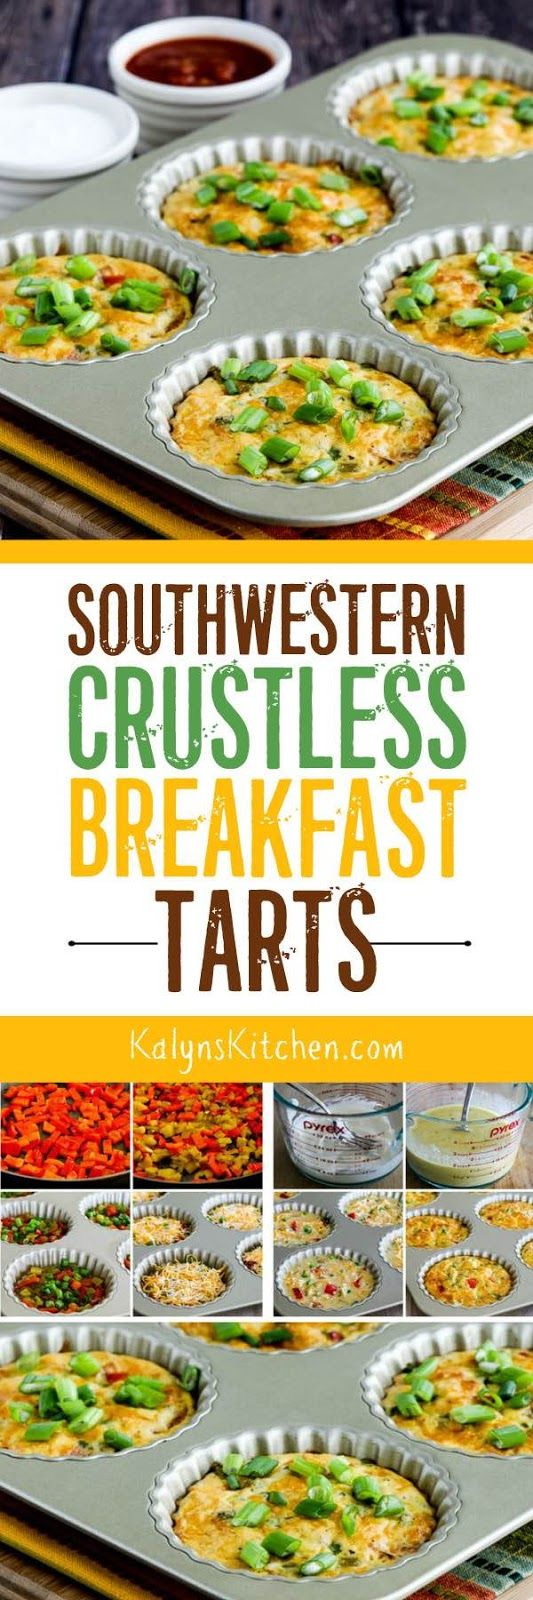 Southwestern Crustless Breakfast Tarts are a delicious low-carb breakfast that's also Keto, low-glycemic, gluten-free, meatless, and can be South Beach Diet friendly!  This would be a great breakfast when you have overnight guests, and it's great for those times you need a low-carb treat as well! [found on KalynsKitchen.com] #CrustlessBreakfastTart #LowCarbBreakfastTart #LowCarbSouthwesternBreakfat #LowCarbBreakfat #BreakfastTart